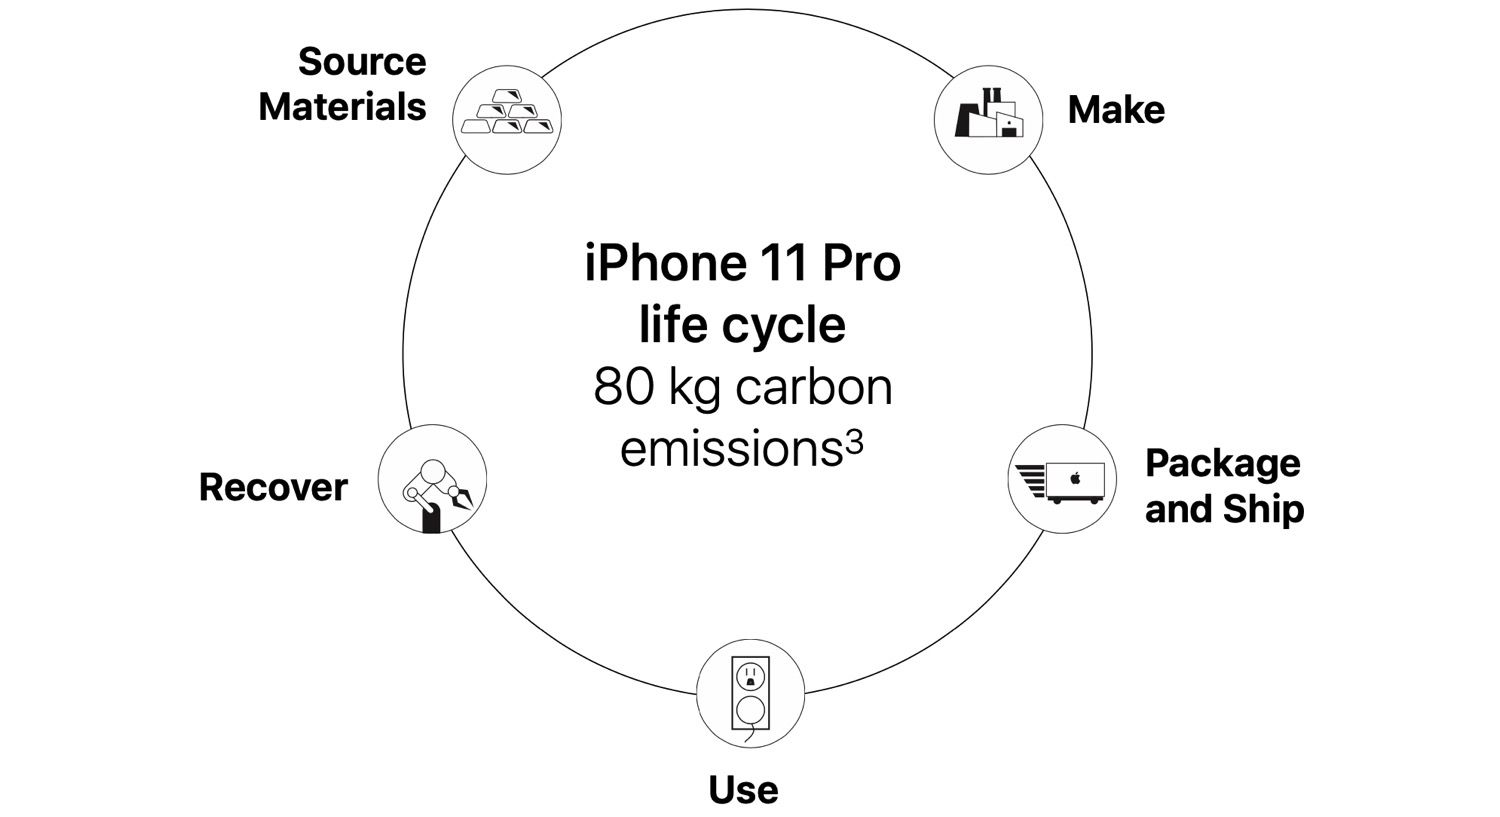 Iphone 11 Pro life cycle emissions